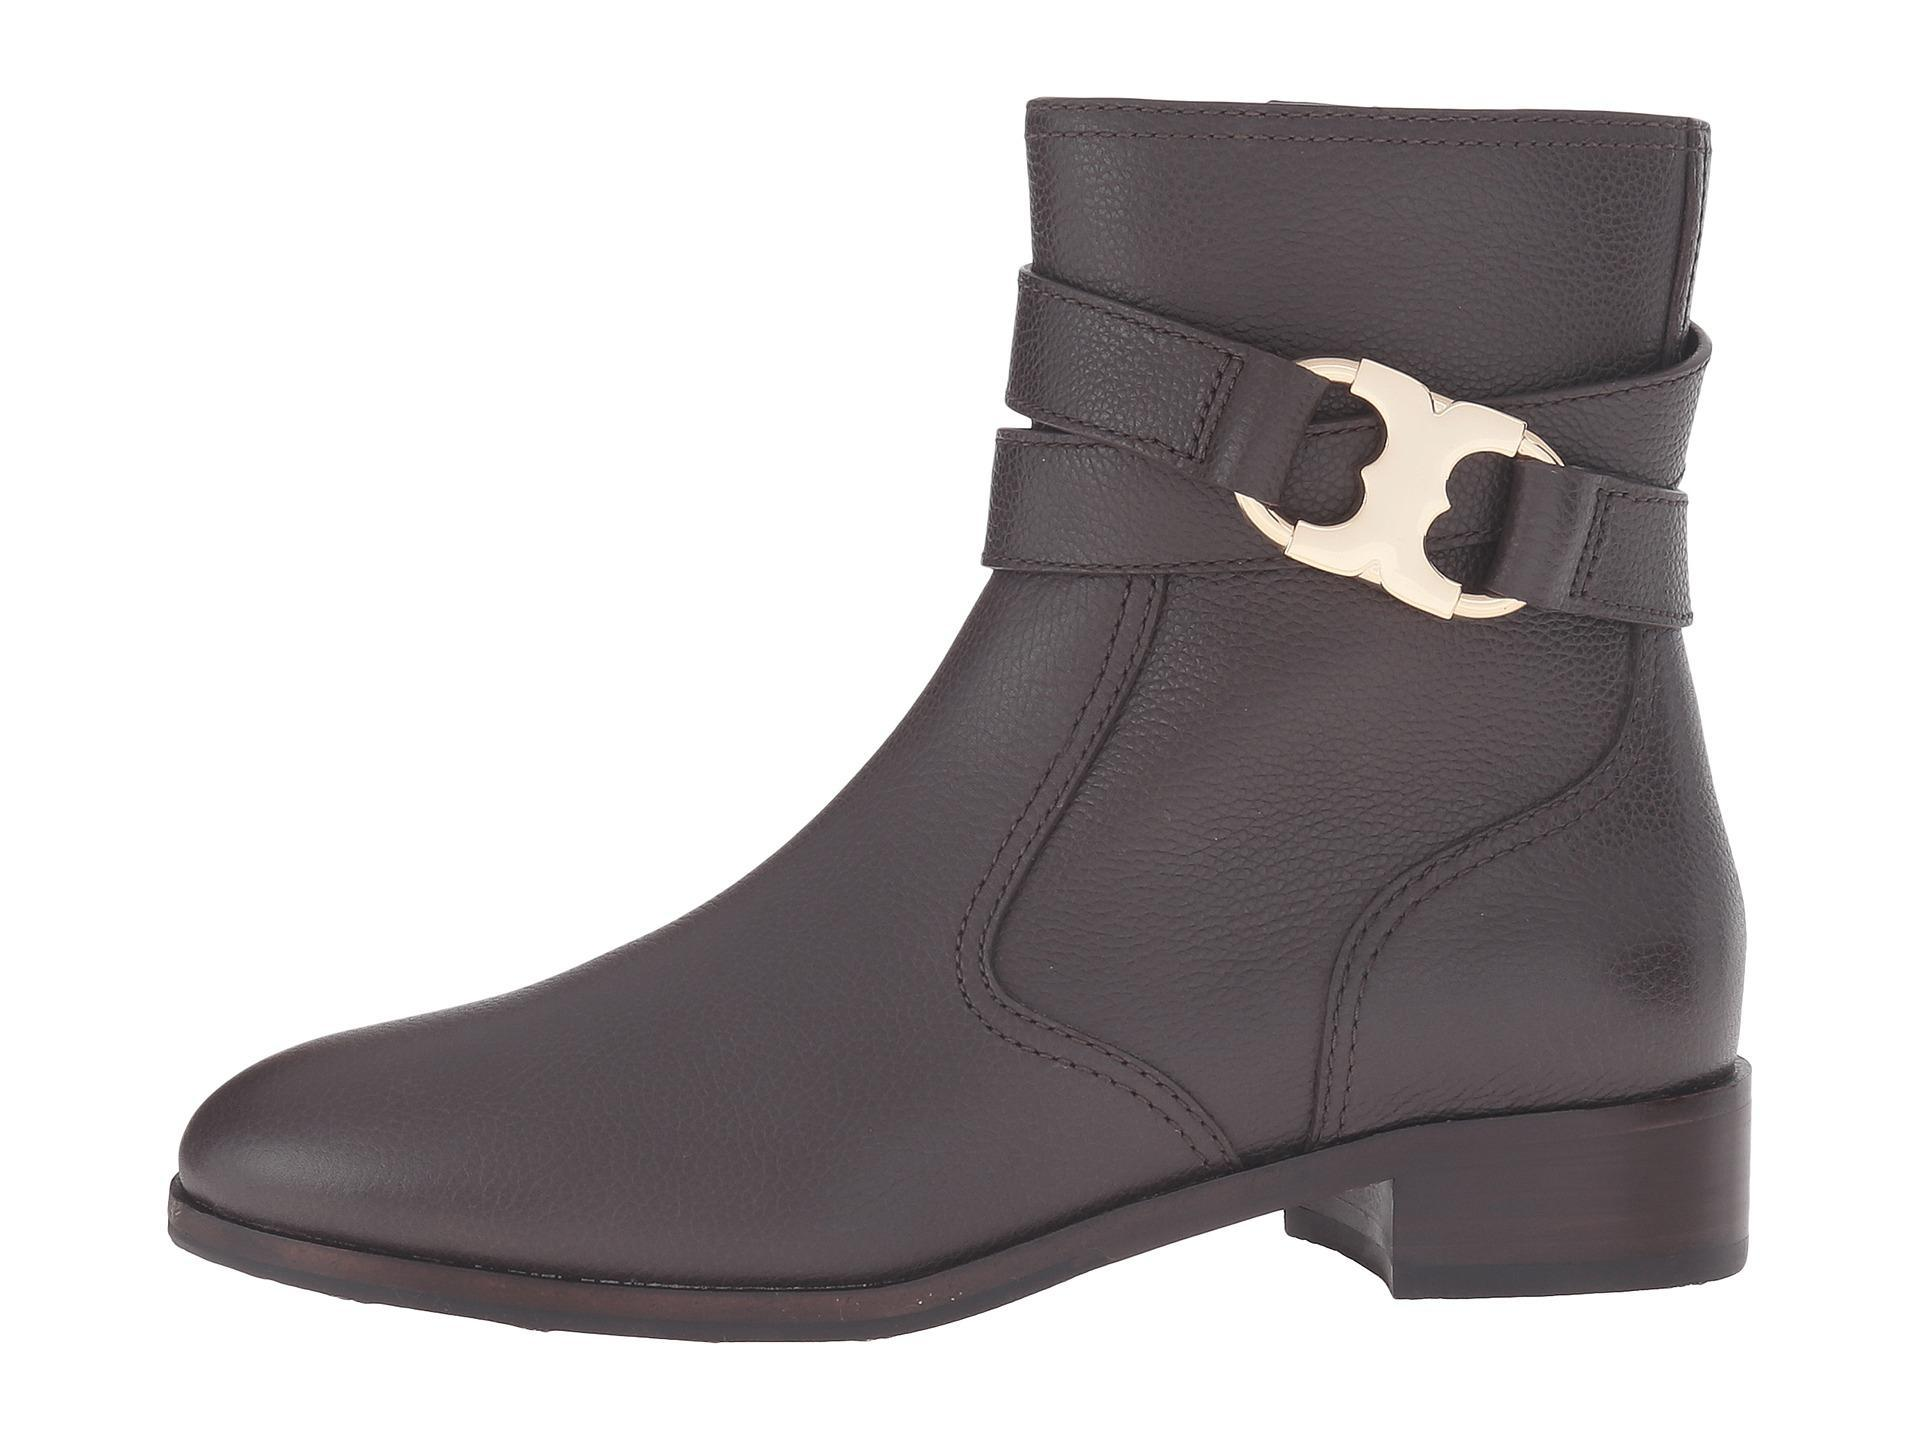 d8f05a984443 Tory Burch Brown Gemini Link Link Link Coconut Leather Gold Full Zip Ankle  Boots Booties Size US 11 Regular (M